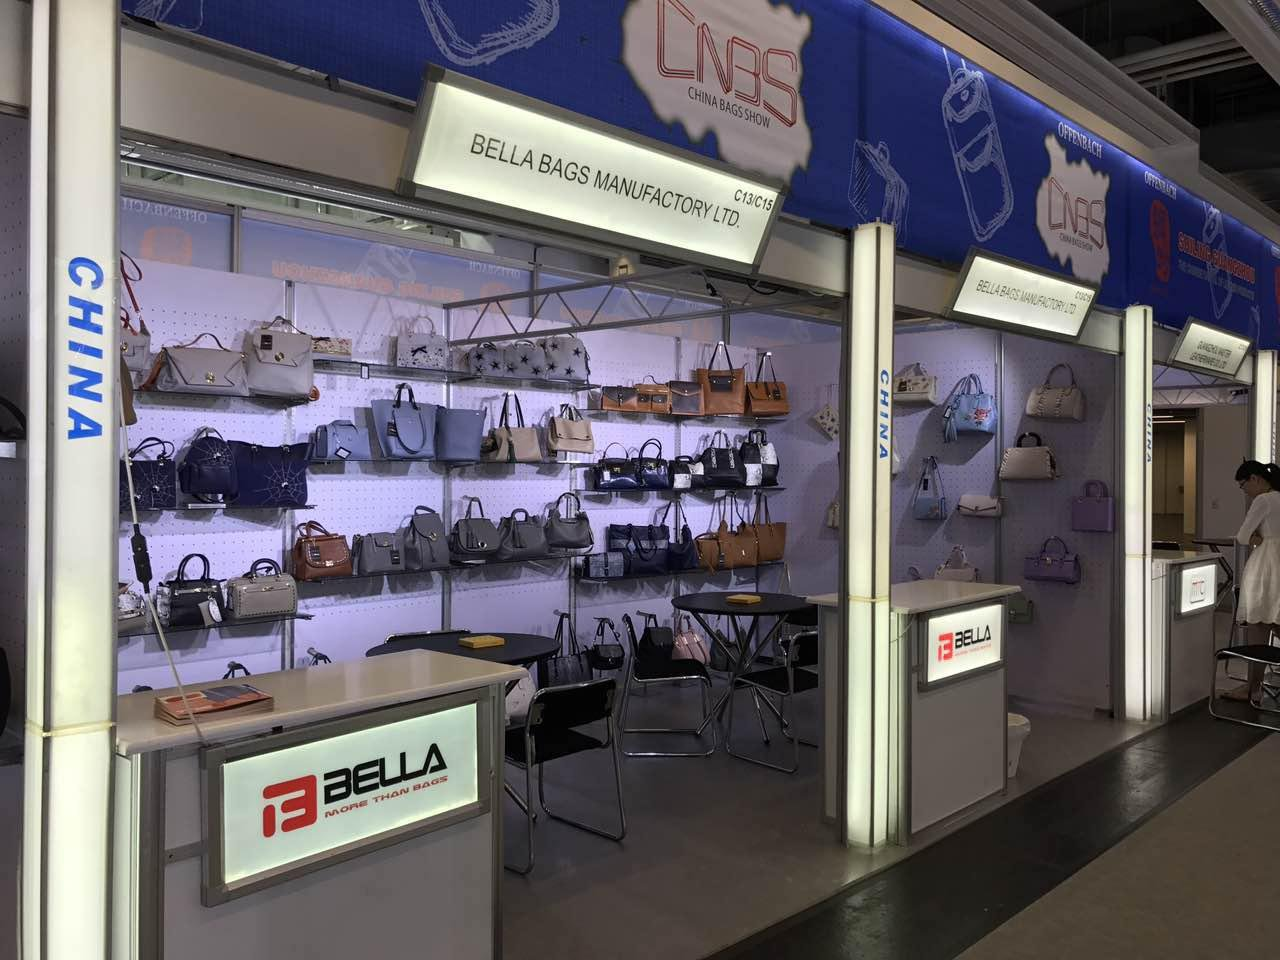 BELLA-JUNE, 2017 Offenbach Germany | News On Bella Bags-2